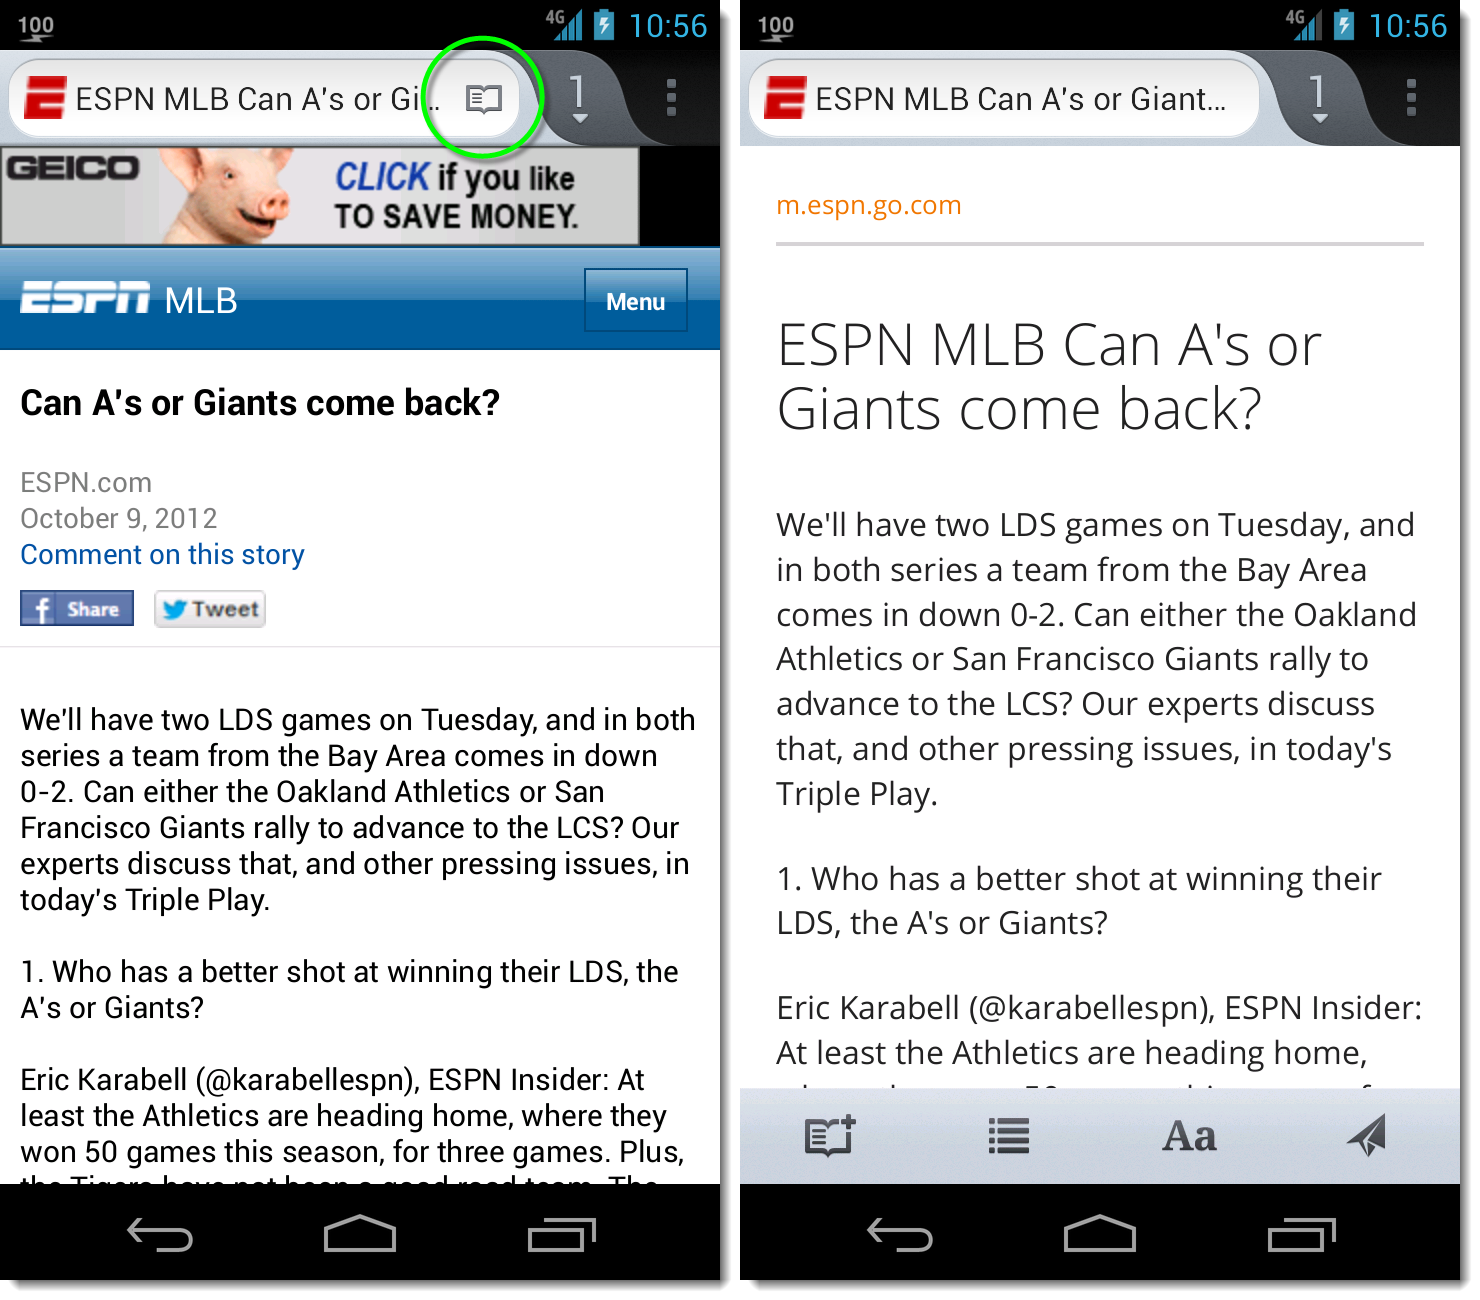 Firefox Reader Mode (Android phone)